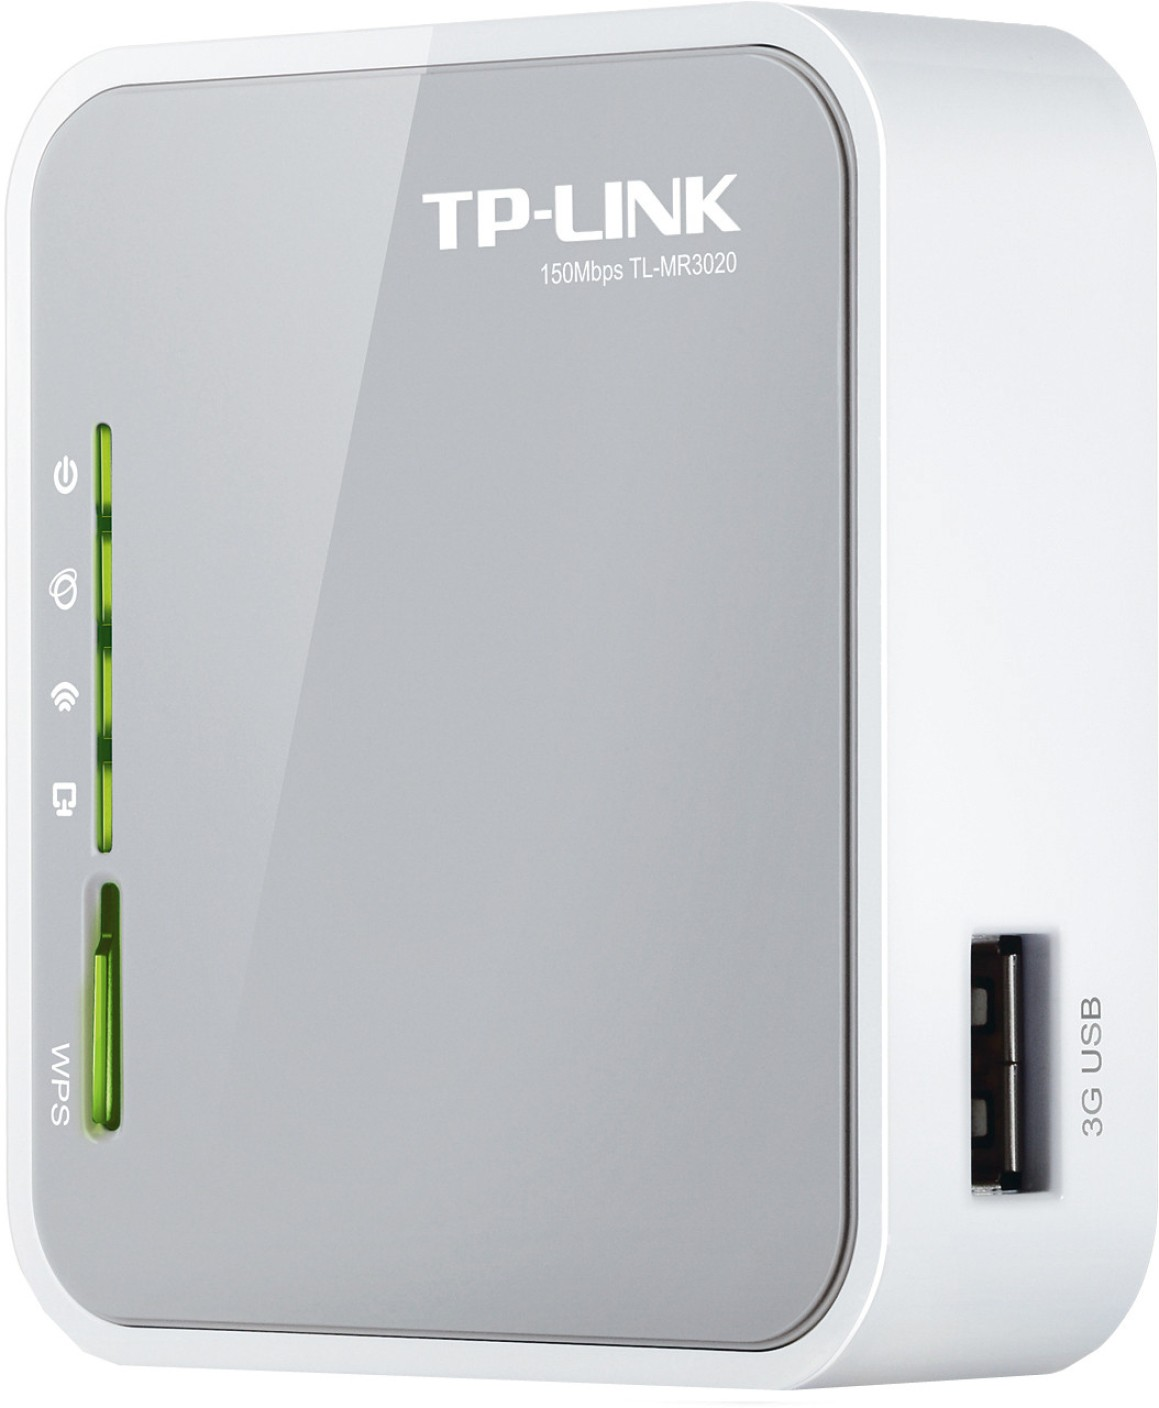 Router mobile et modems - Add To Cart